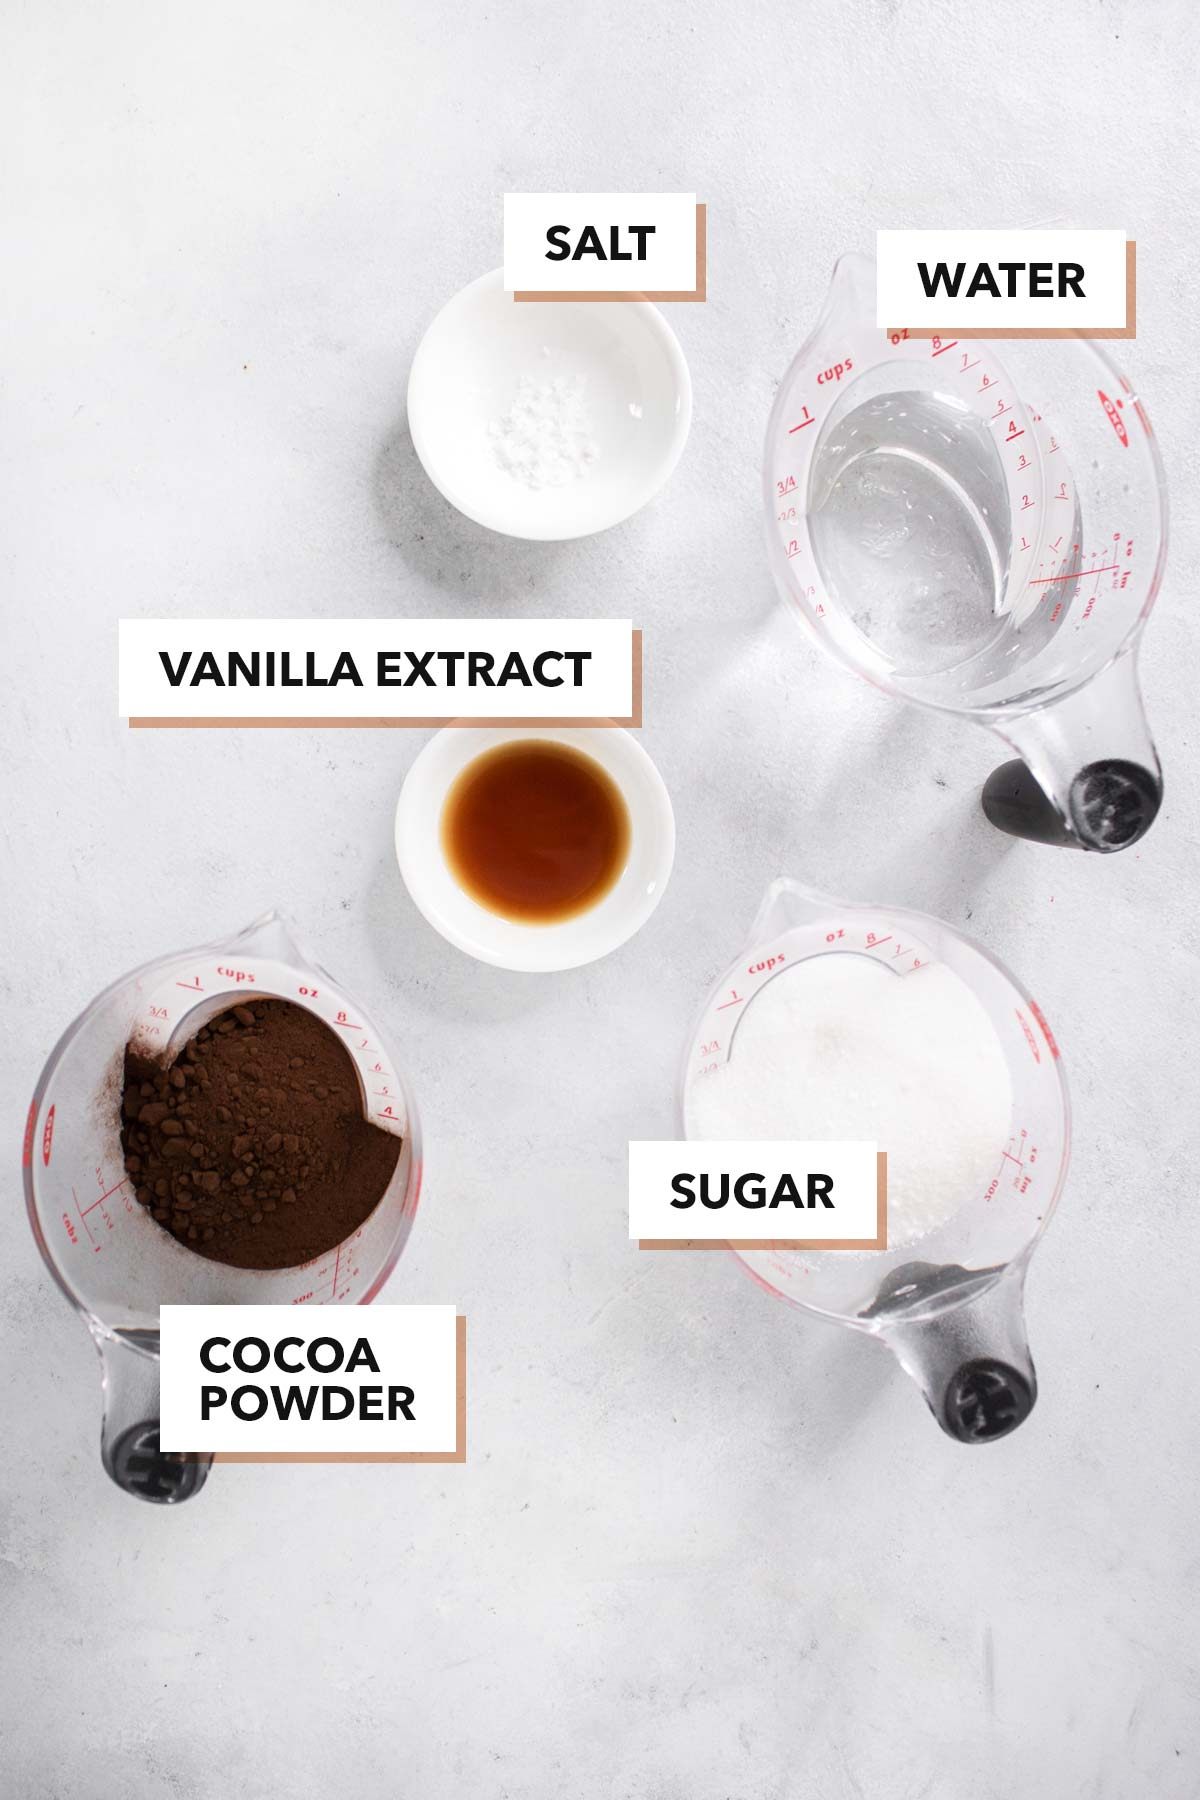 Chocolate syrup ingredients.